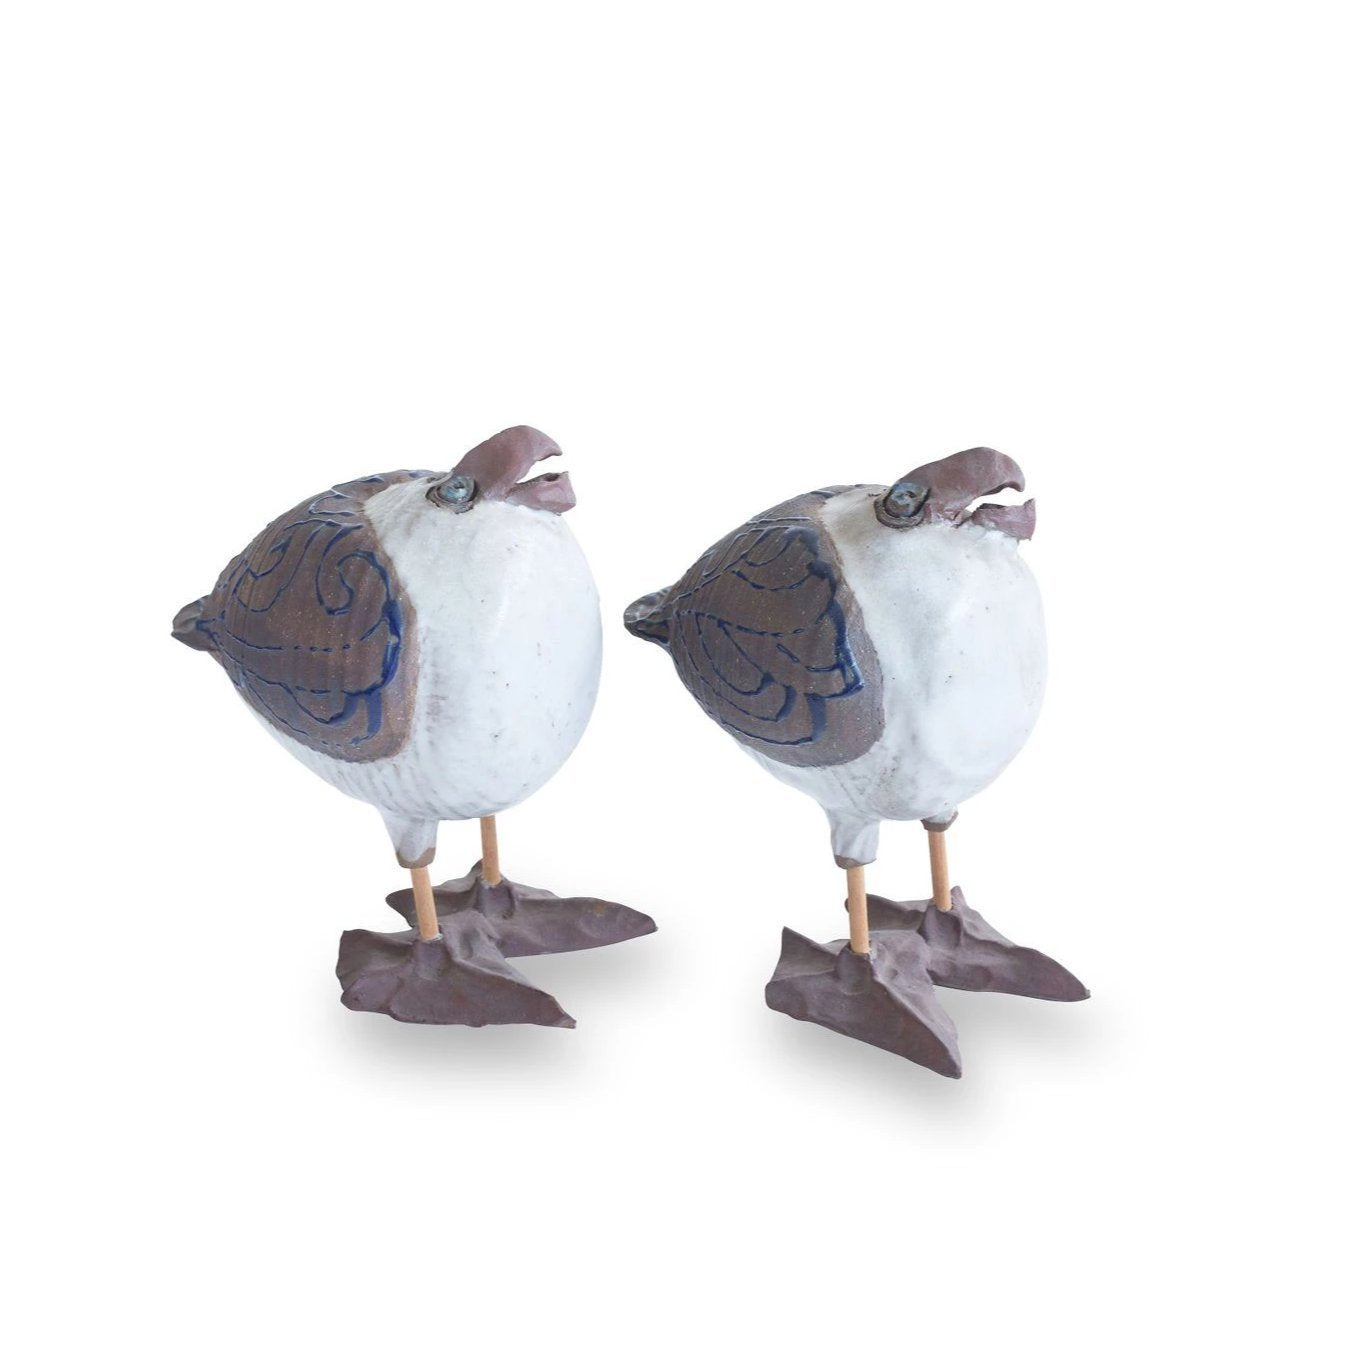 Pair of Vintage Ceramic Seagulls